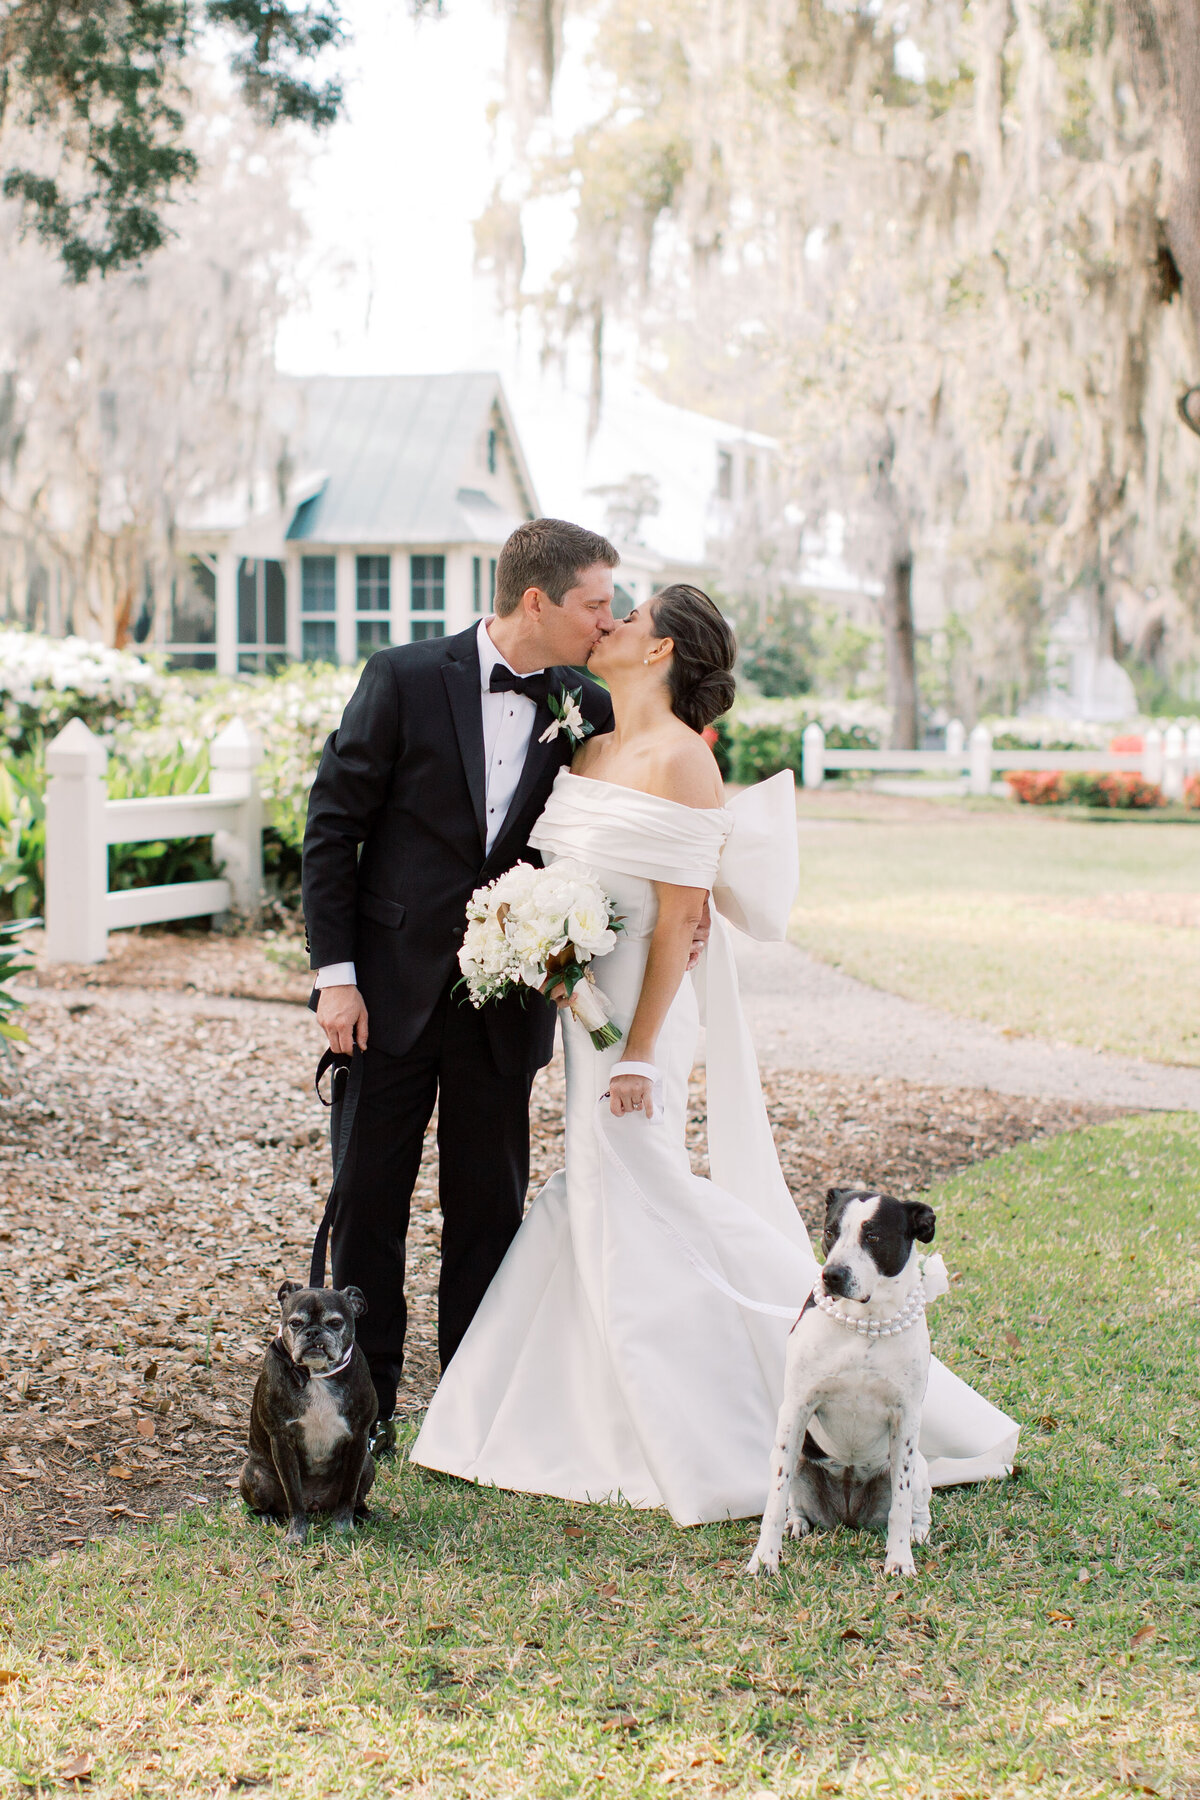 Powell_Oldfield_River_Club_Bluffton_South_Carolina_Beaufort_Savannah_Wedding_Jacksonville_Florida_Devon_Donnahoo_Photography_0778